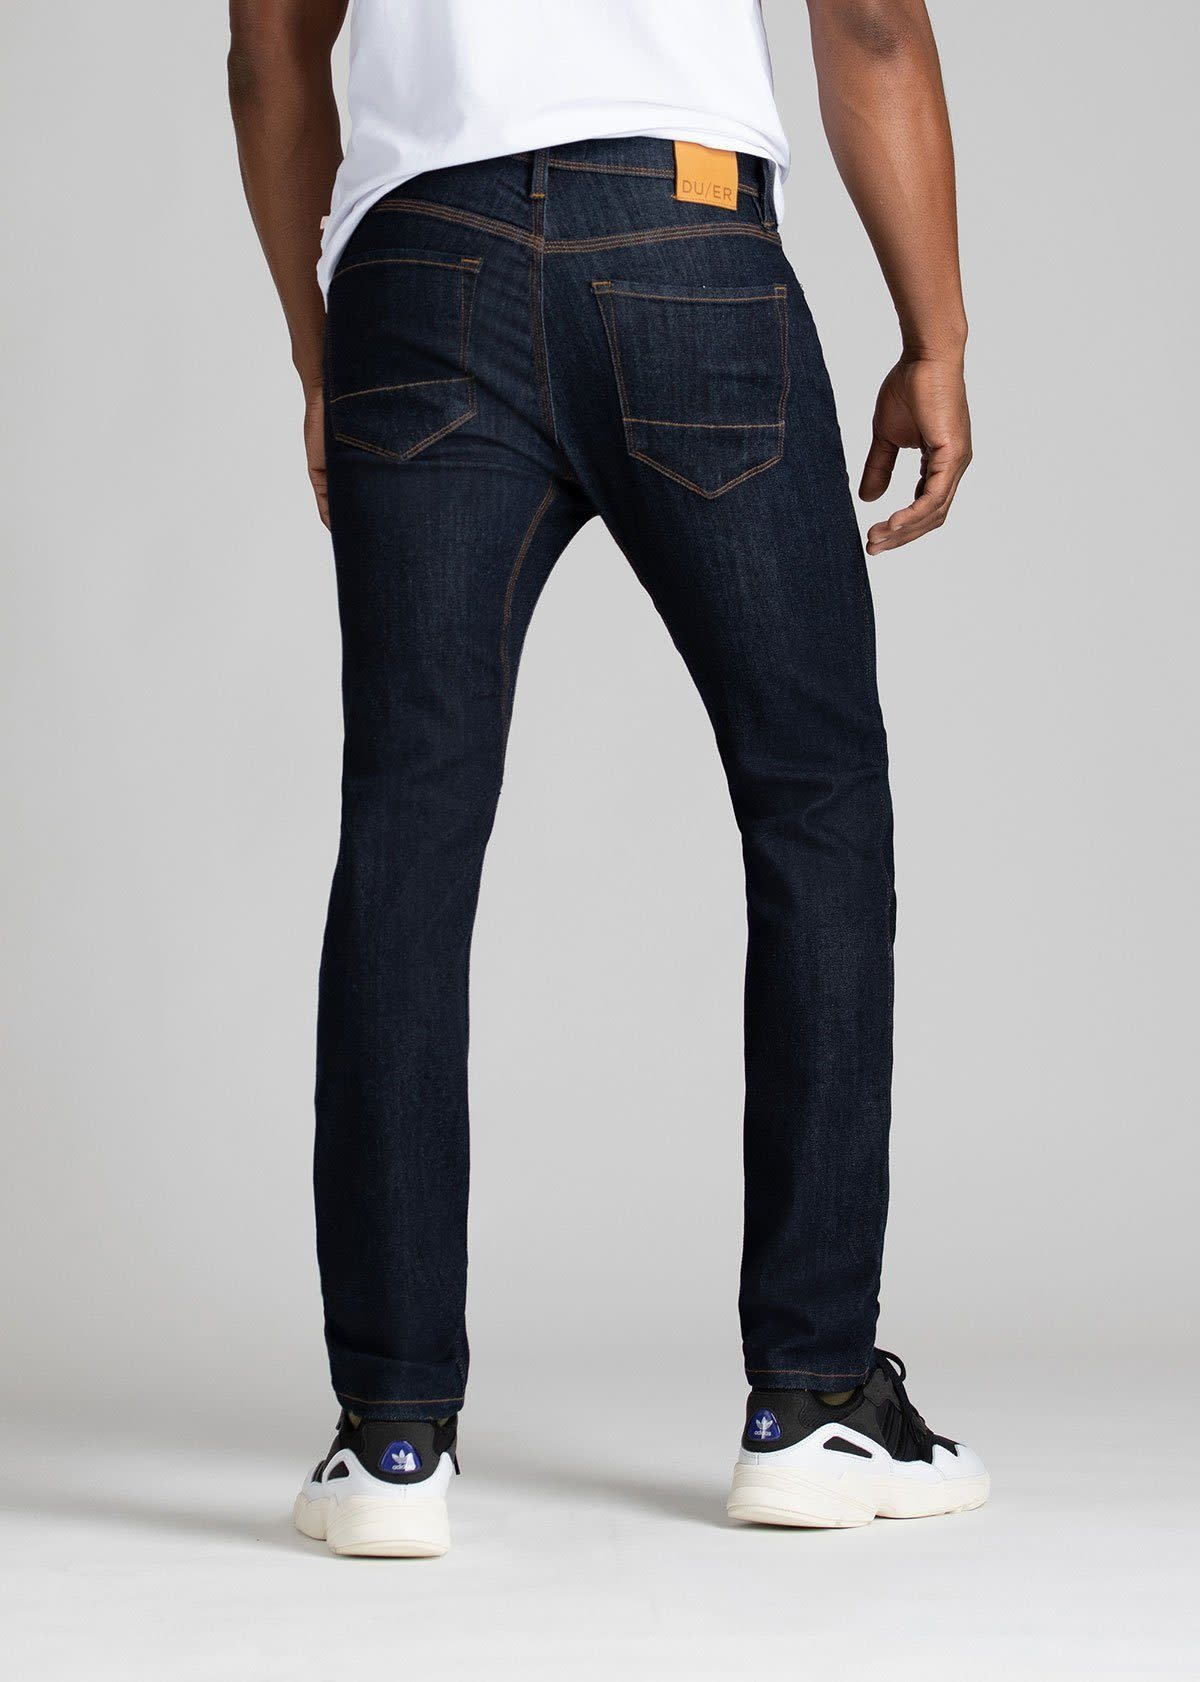 DUER Performance Denim Slim-8